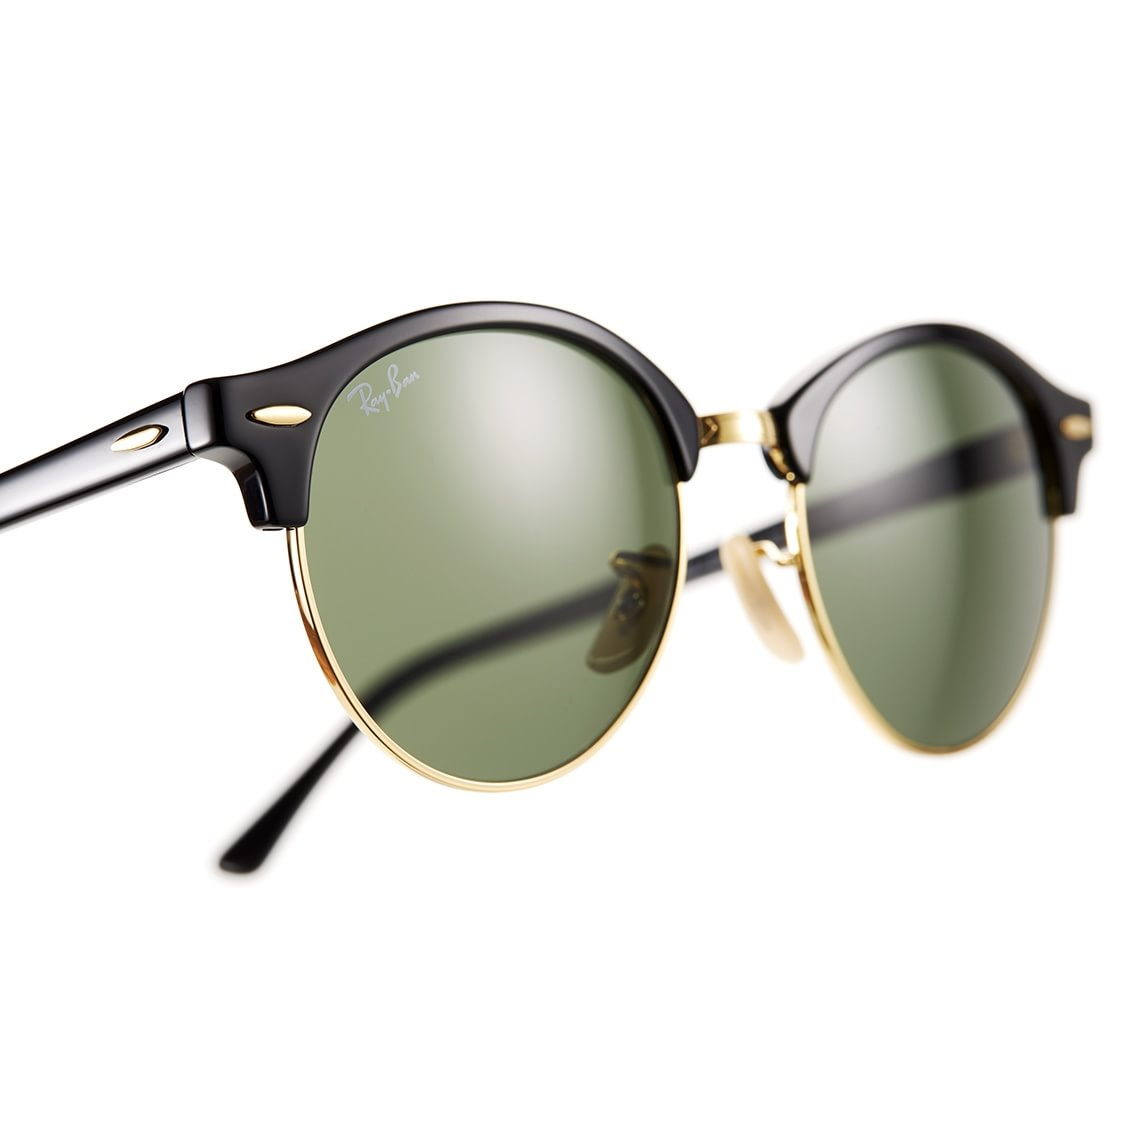 Ray-Ban Clubround RB4246 901 51